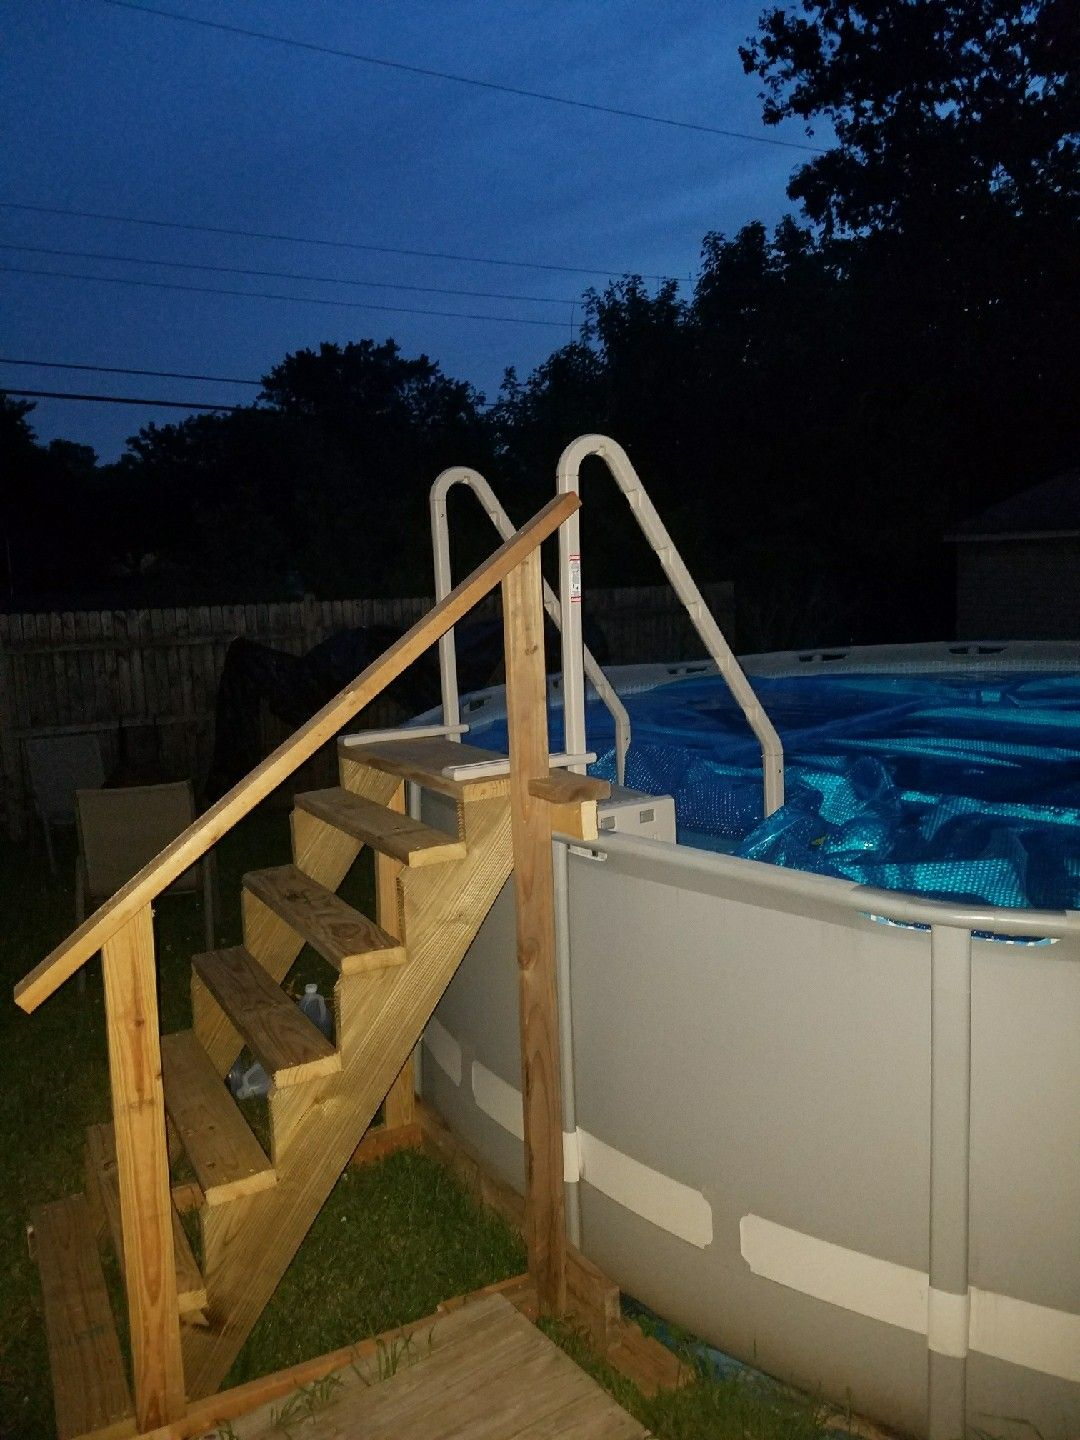 I Built Stairs For Our Pool With Confer Steps Attached For Easy Entry And Exit Love Them Works Great Swimming Pool Ladders In Ground Pools Pool Ladder